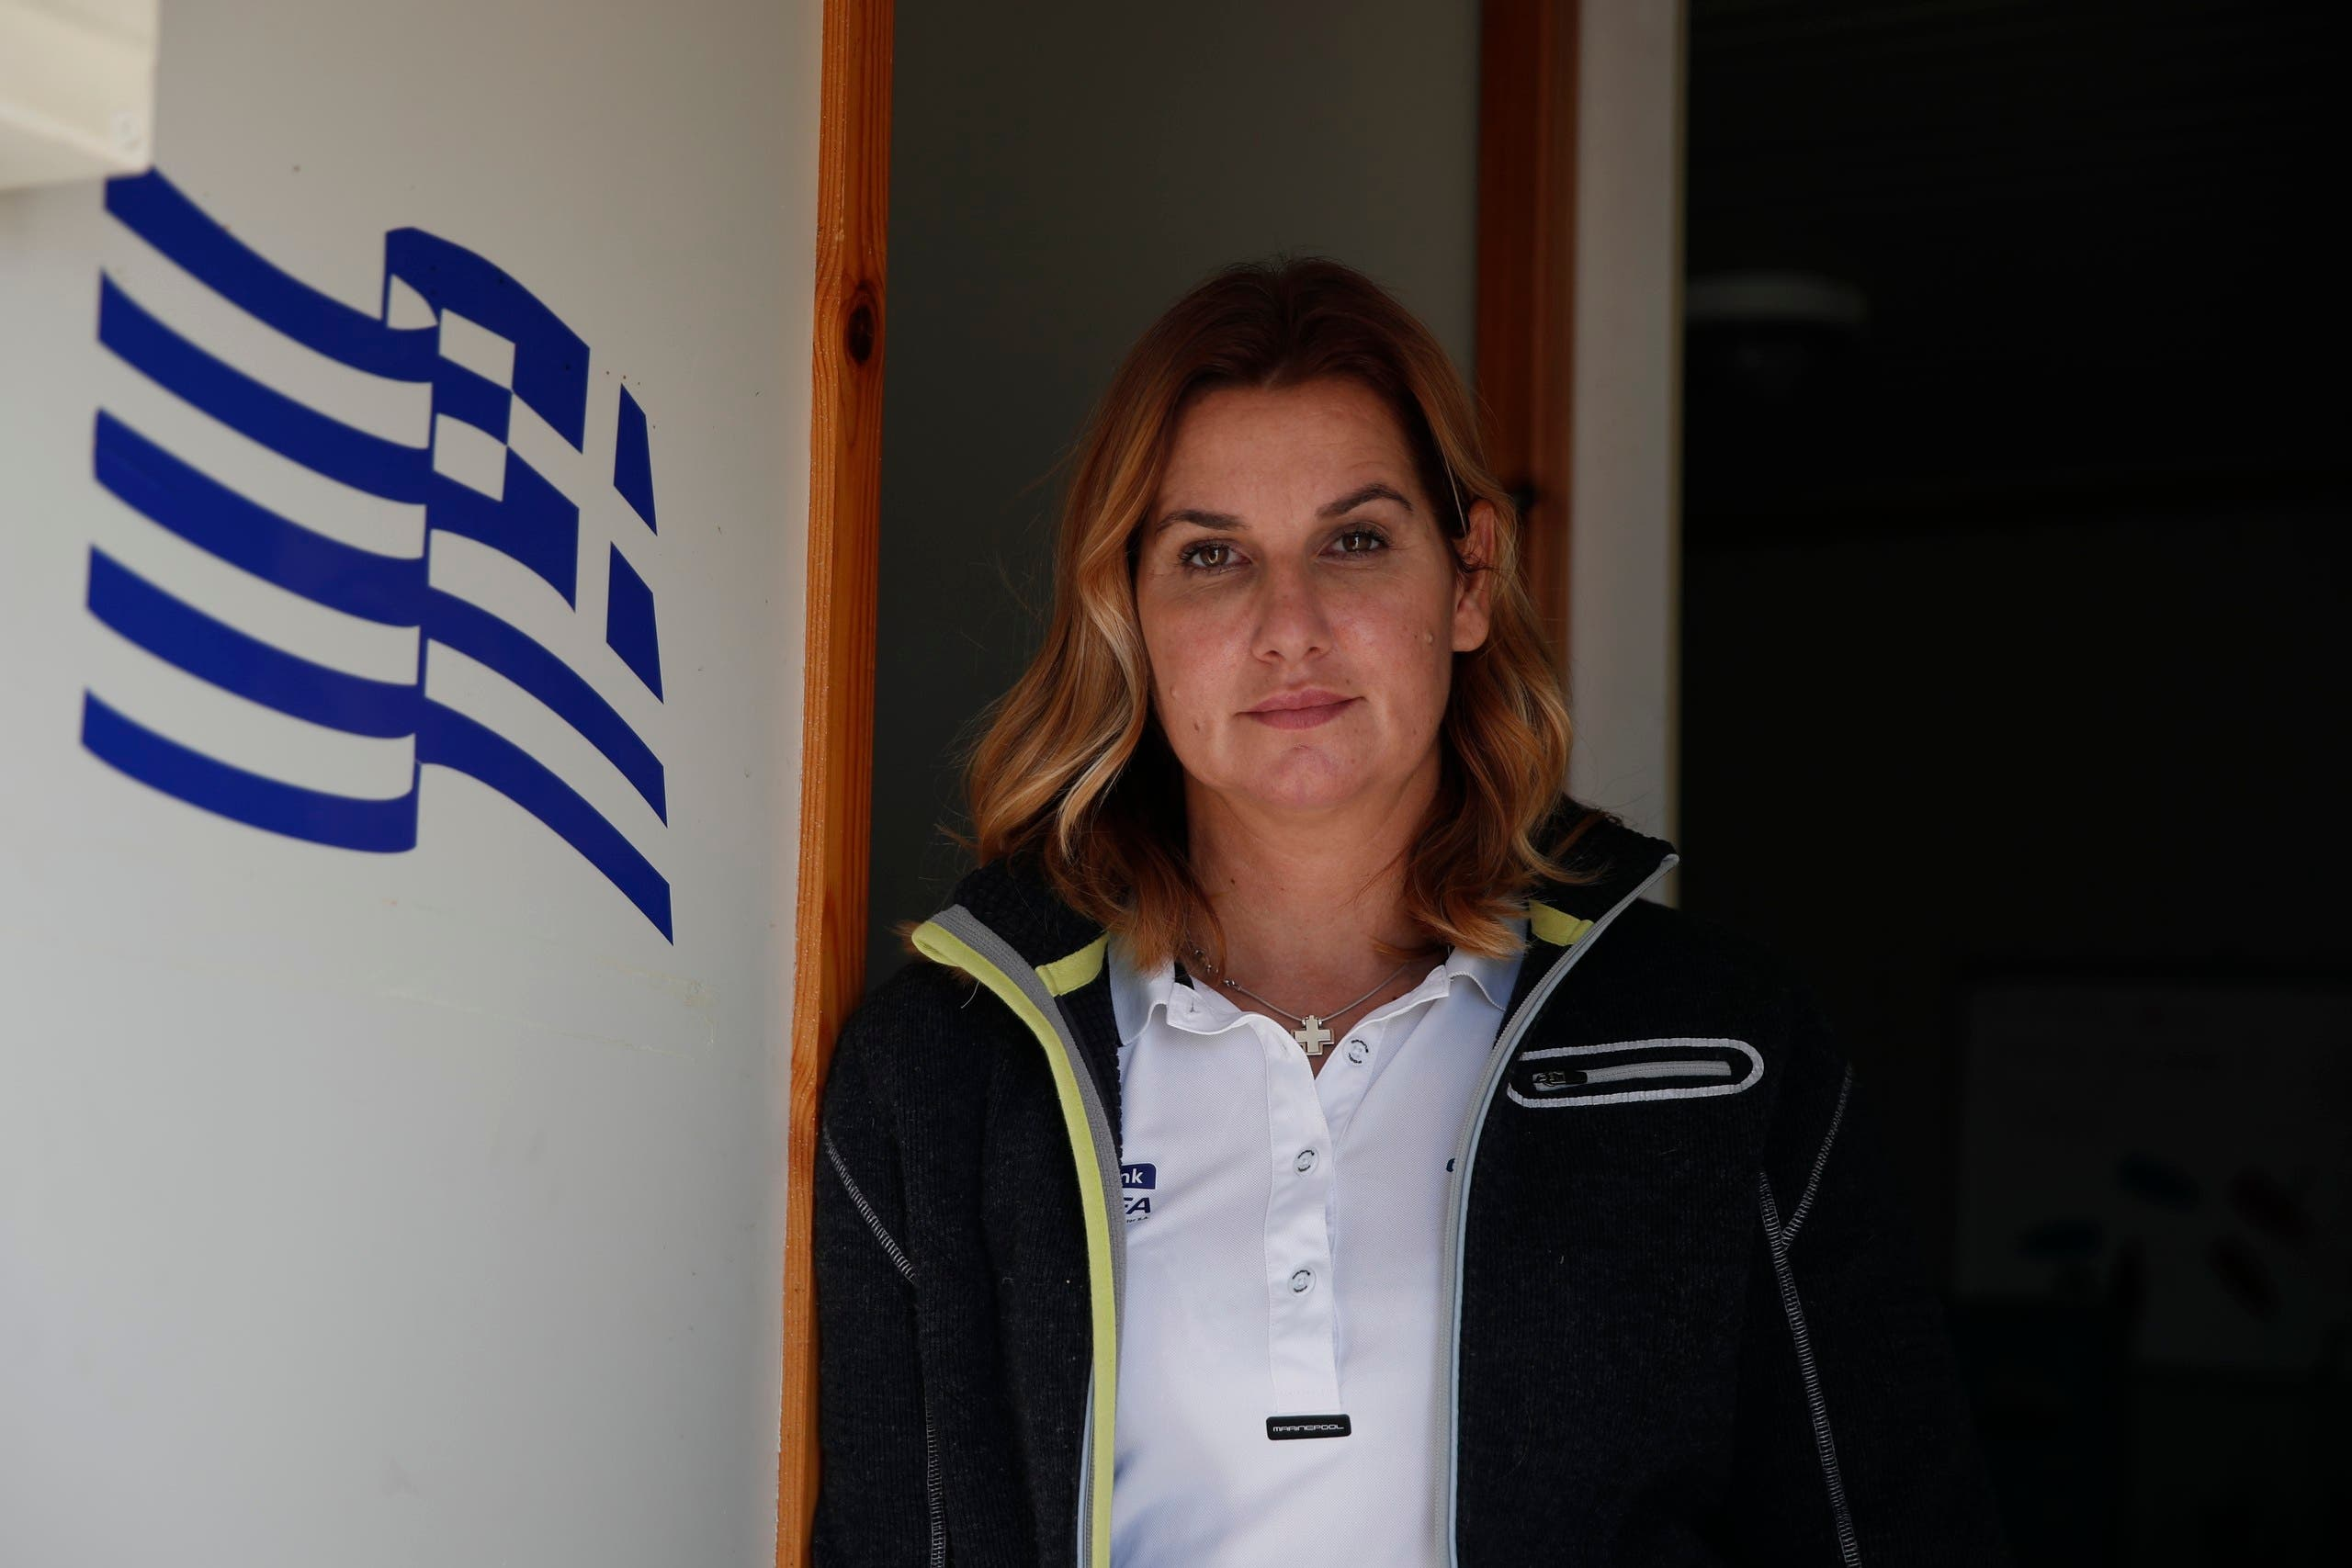 Greek Olympic sailing champion Sofia Bekatorou poses for a photograph during an interview for the Associated Press, at Agios Kosmas marina in southern Athens, Thursday, Feb. 4, 2021. (AP)